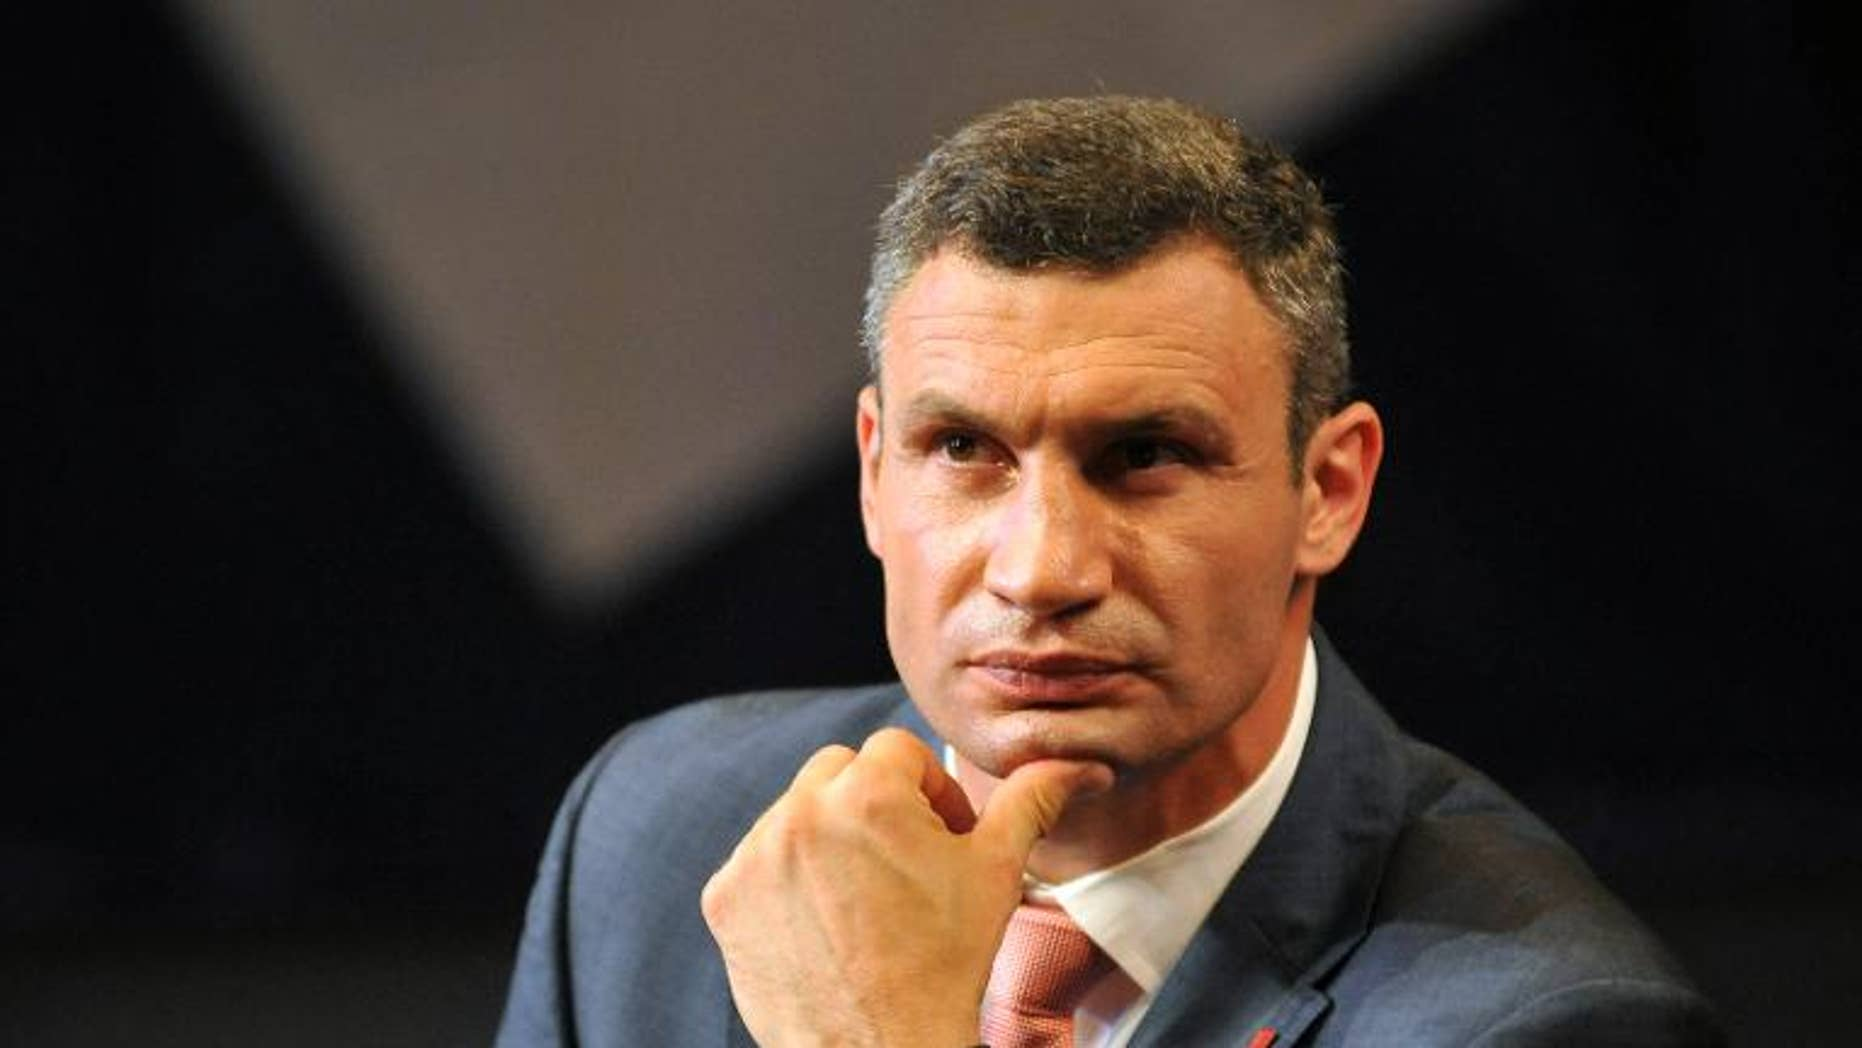 Vitaly Klitschko, leader of the Ukrainian opposition UDAR (Punch) party in Lviv, Ukraine on August 20, 2013.